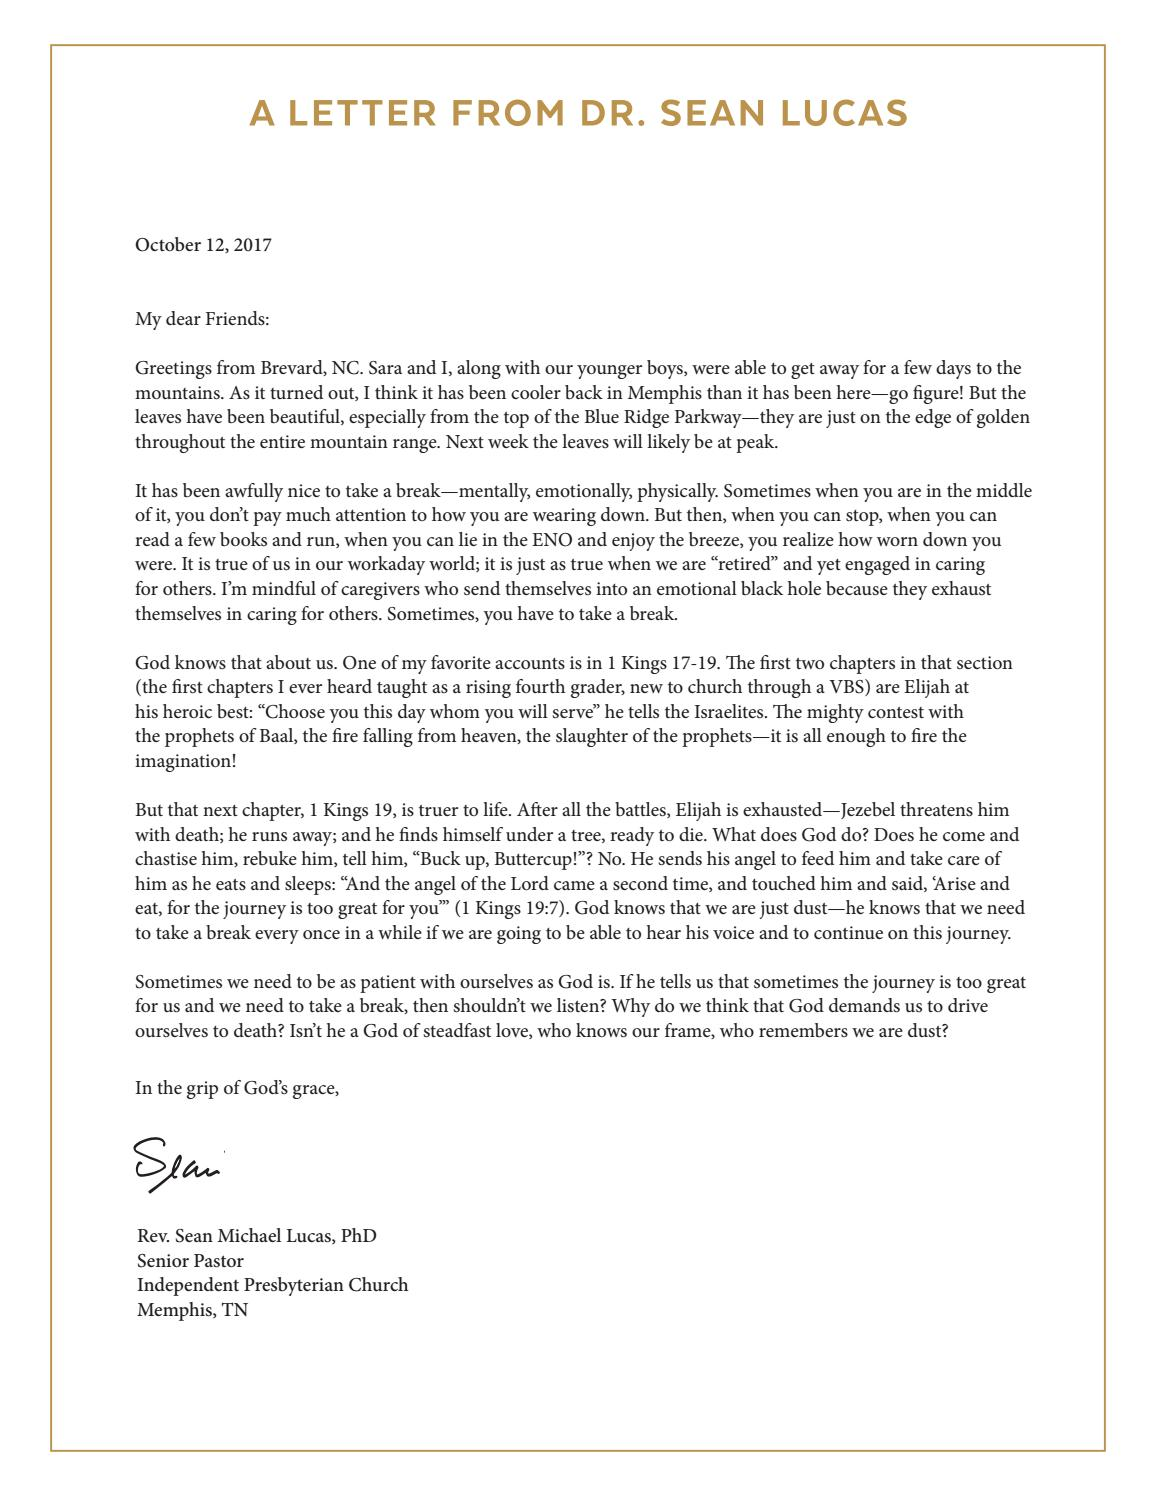 A Letter from Dr. Sean Lucas October 12, 2017 by Independent ...